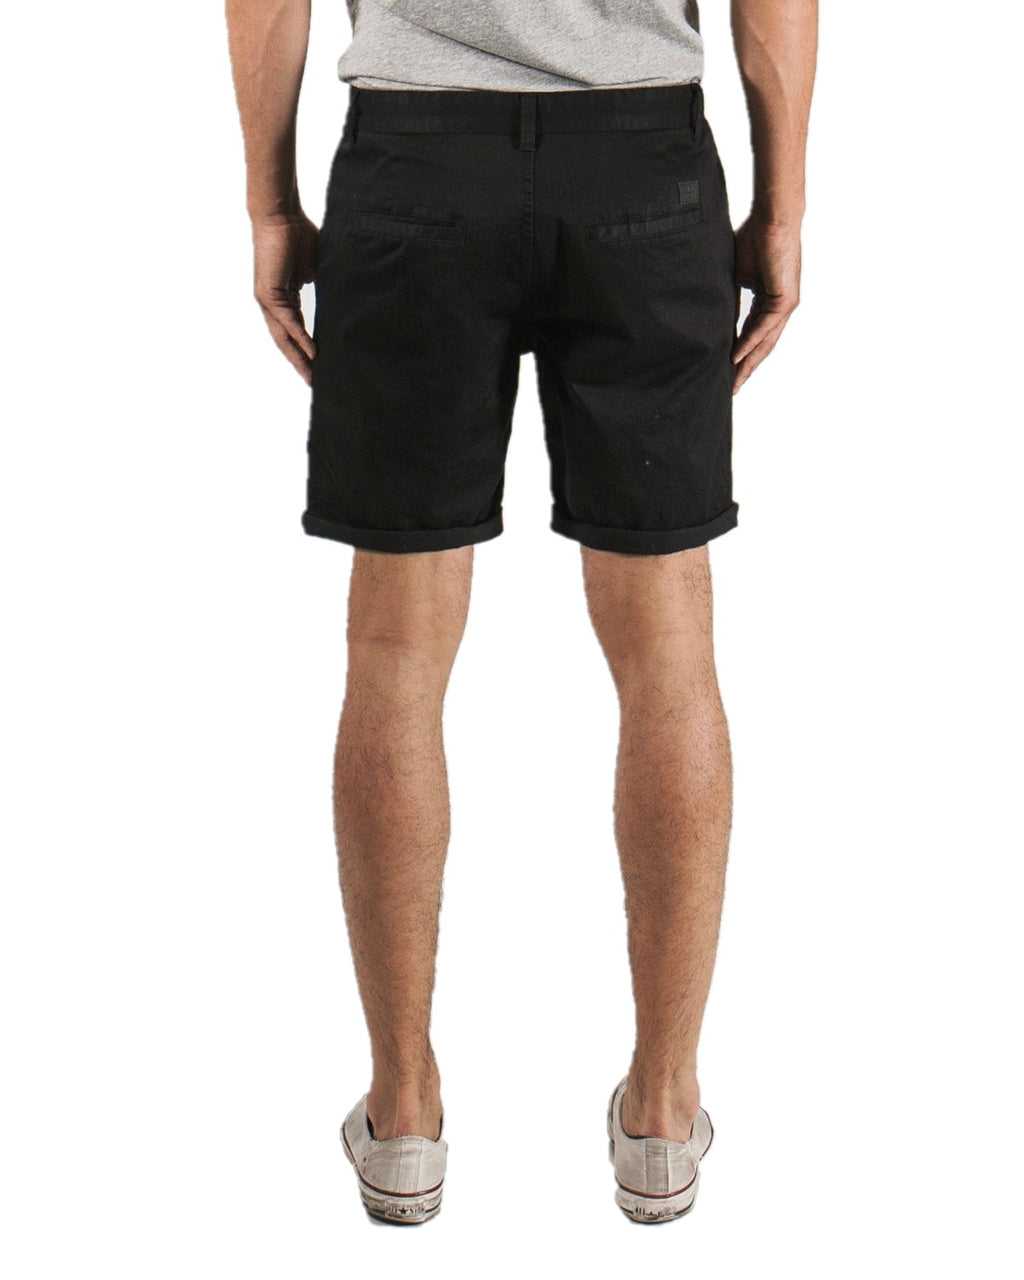 ZIGGY Denim - Slacker Chino Short - Black